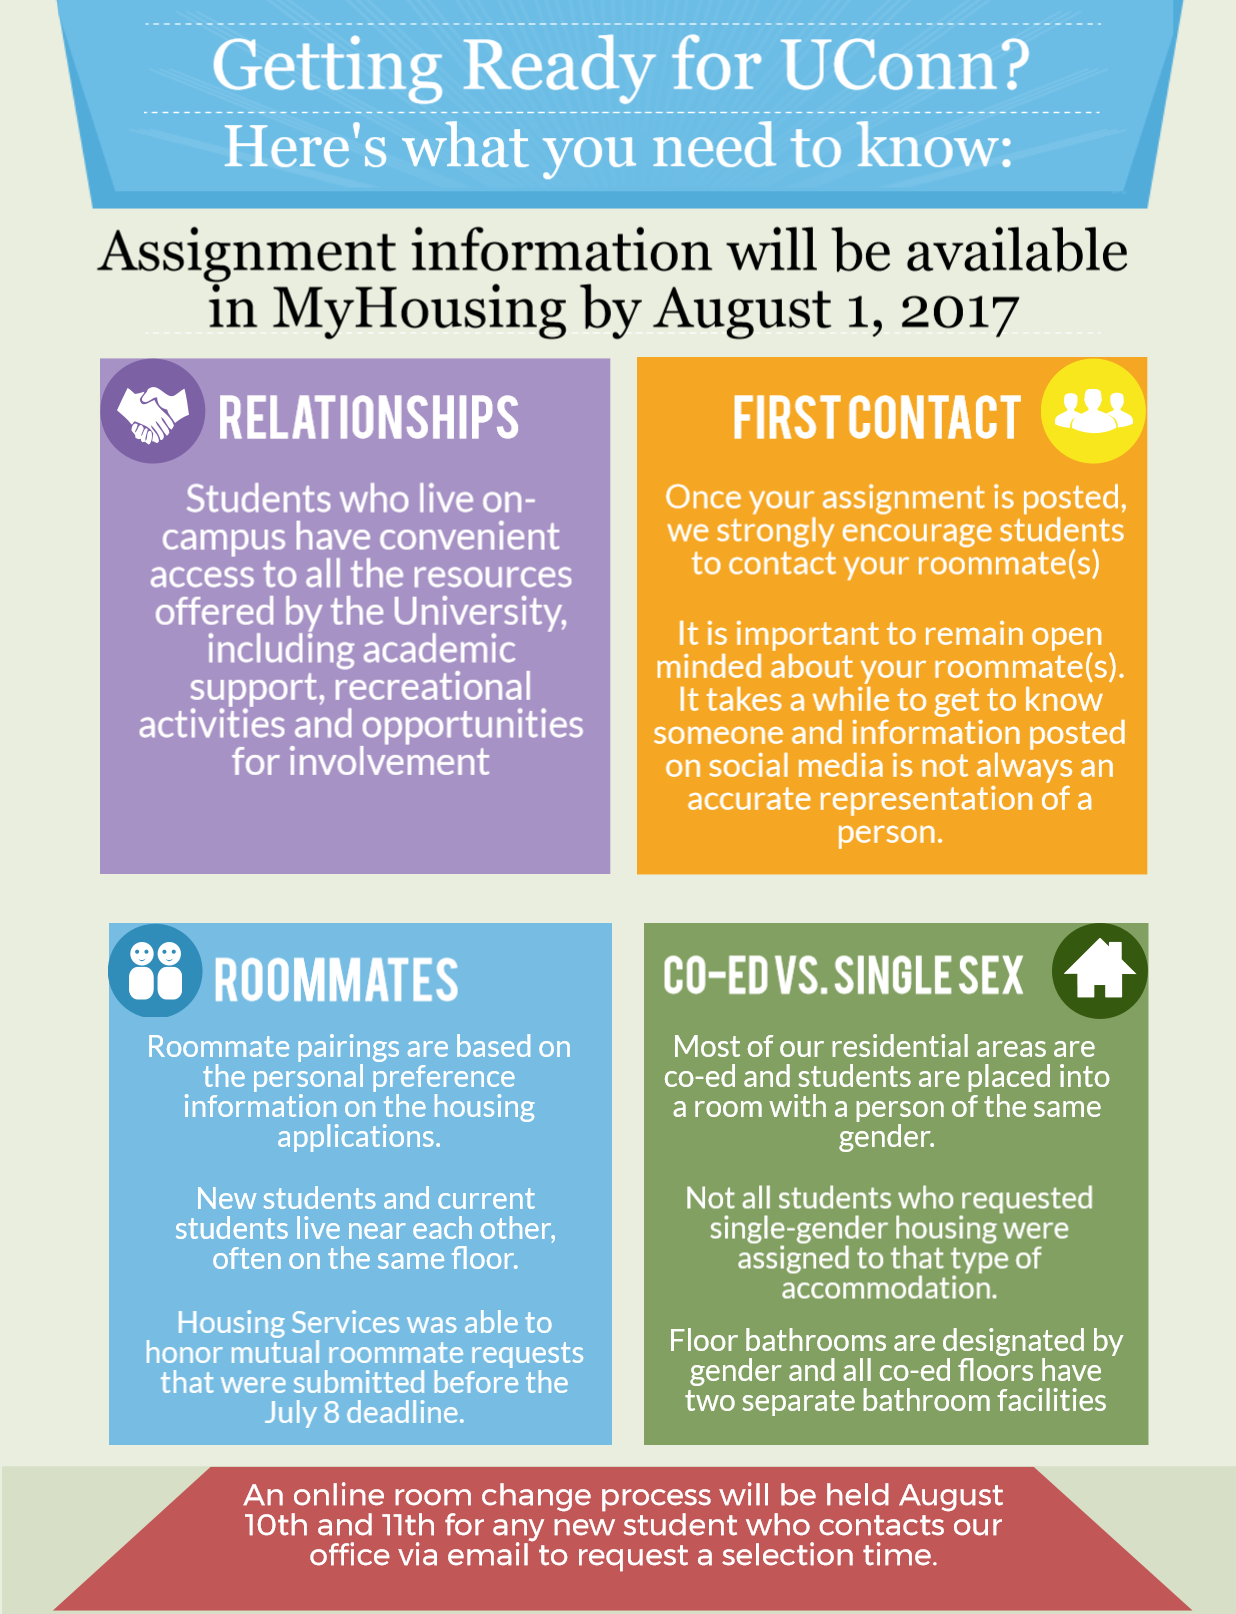 Information flyer regarding relationships, roommates, first year assignments